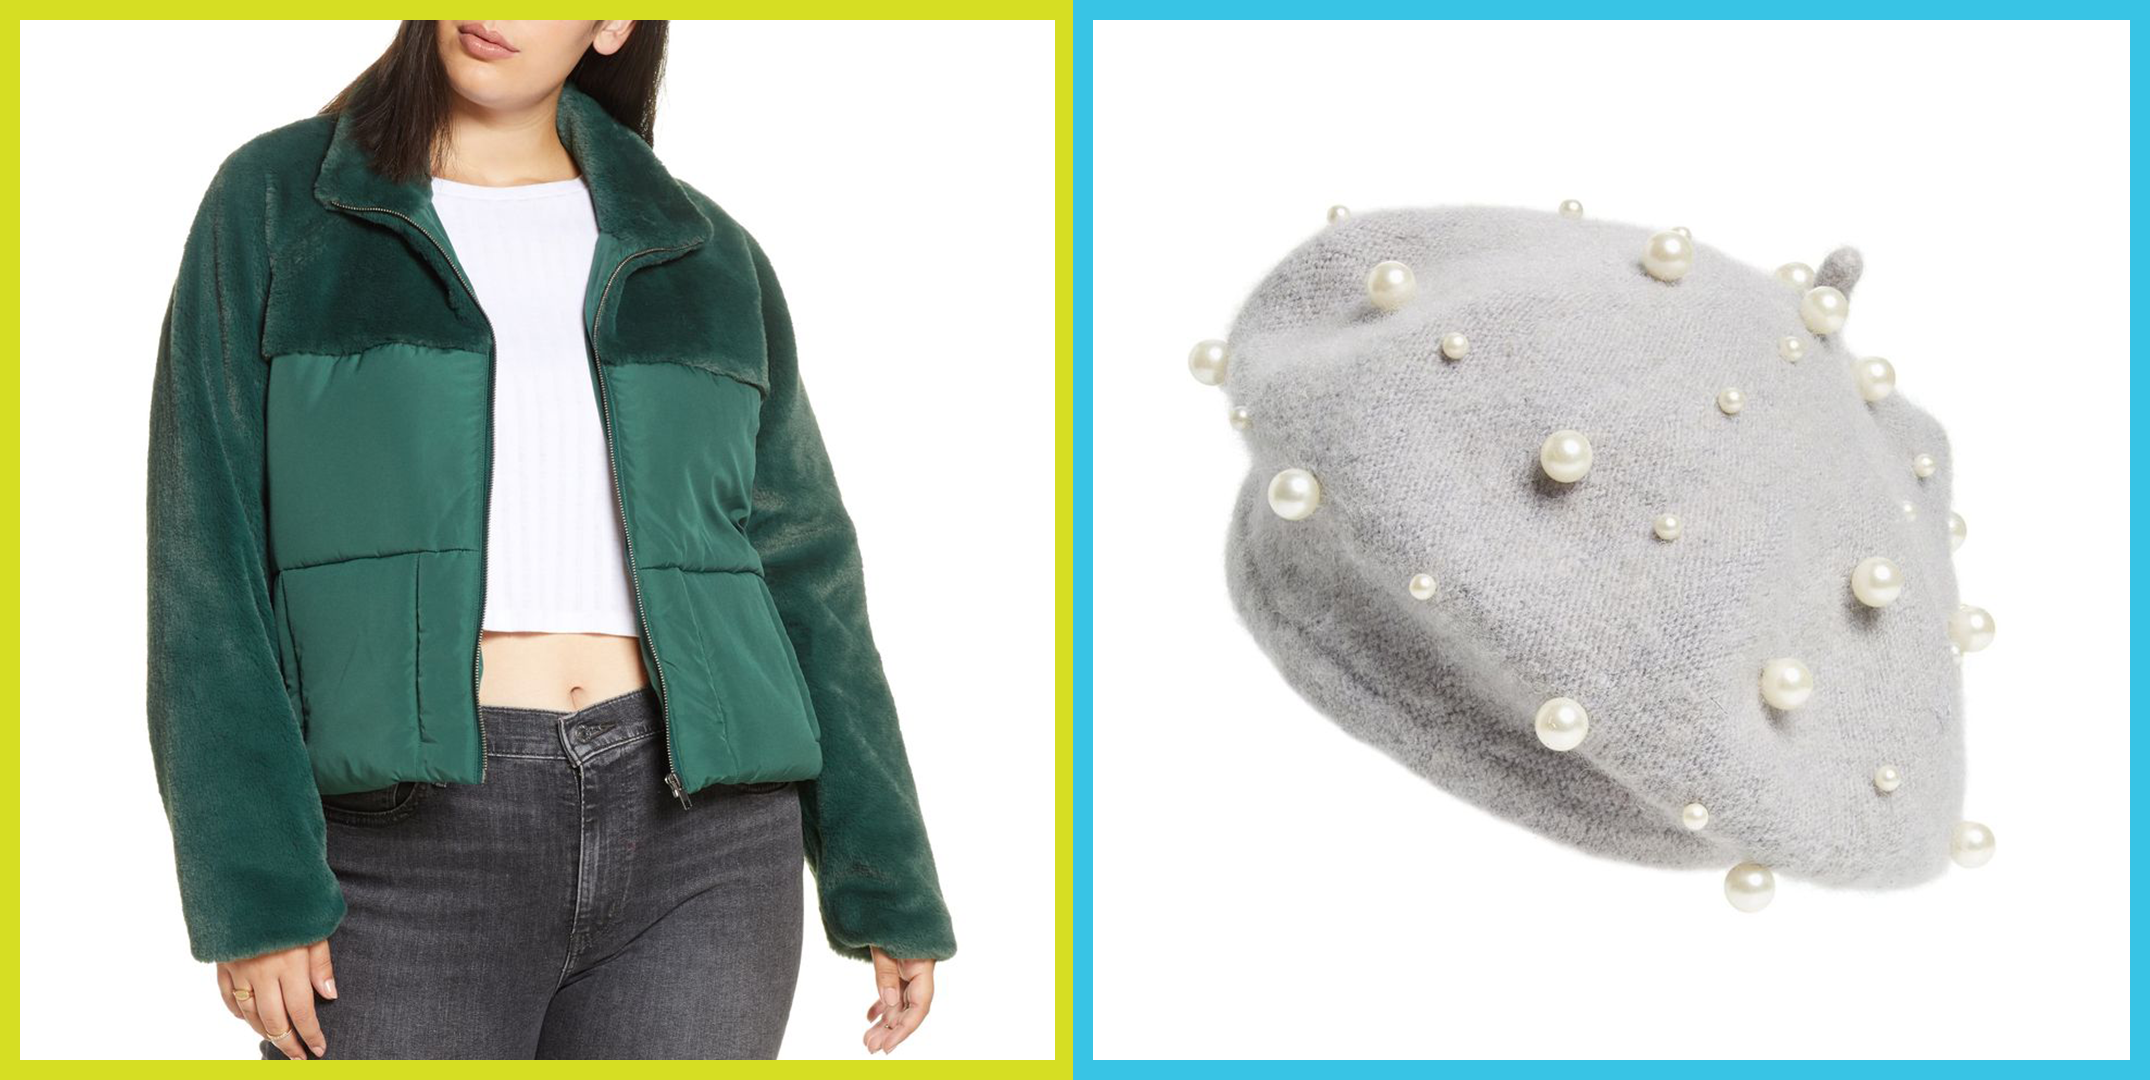 Nordstrom's Winter Sale Has All the Cold-Weather Staples Your Closet Is Missing, FYI